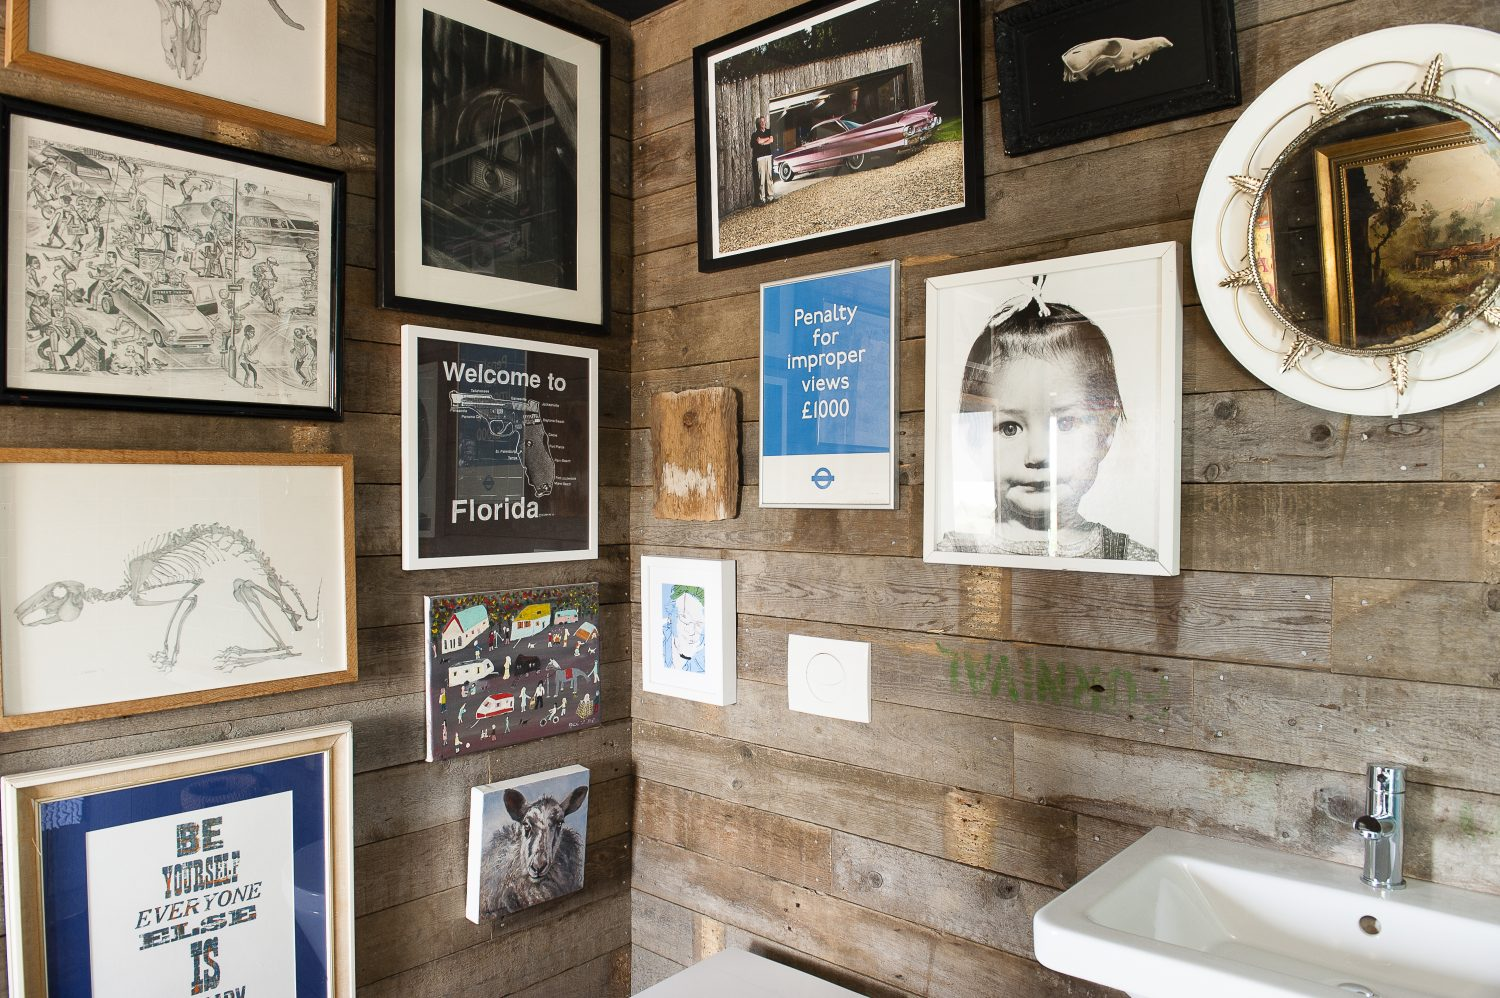 The bathroom walls are lined with an eclectic mix of artworks and photographs